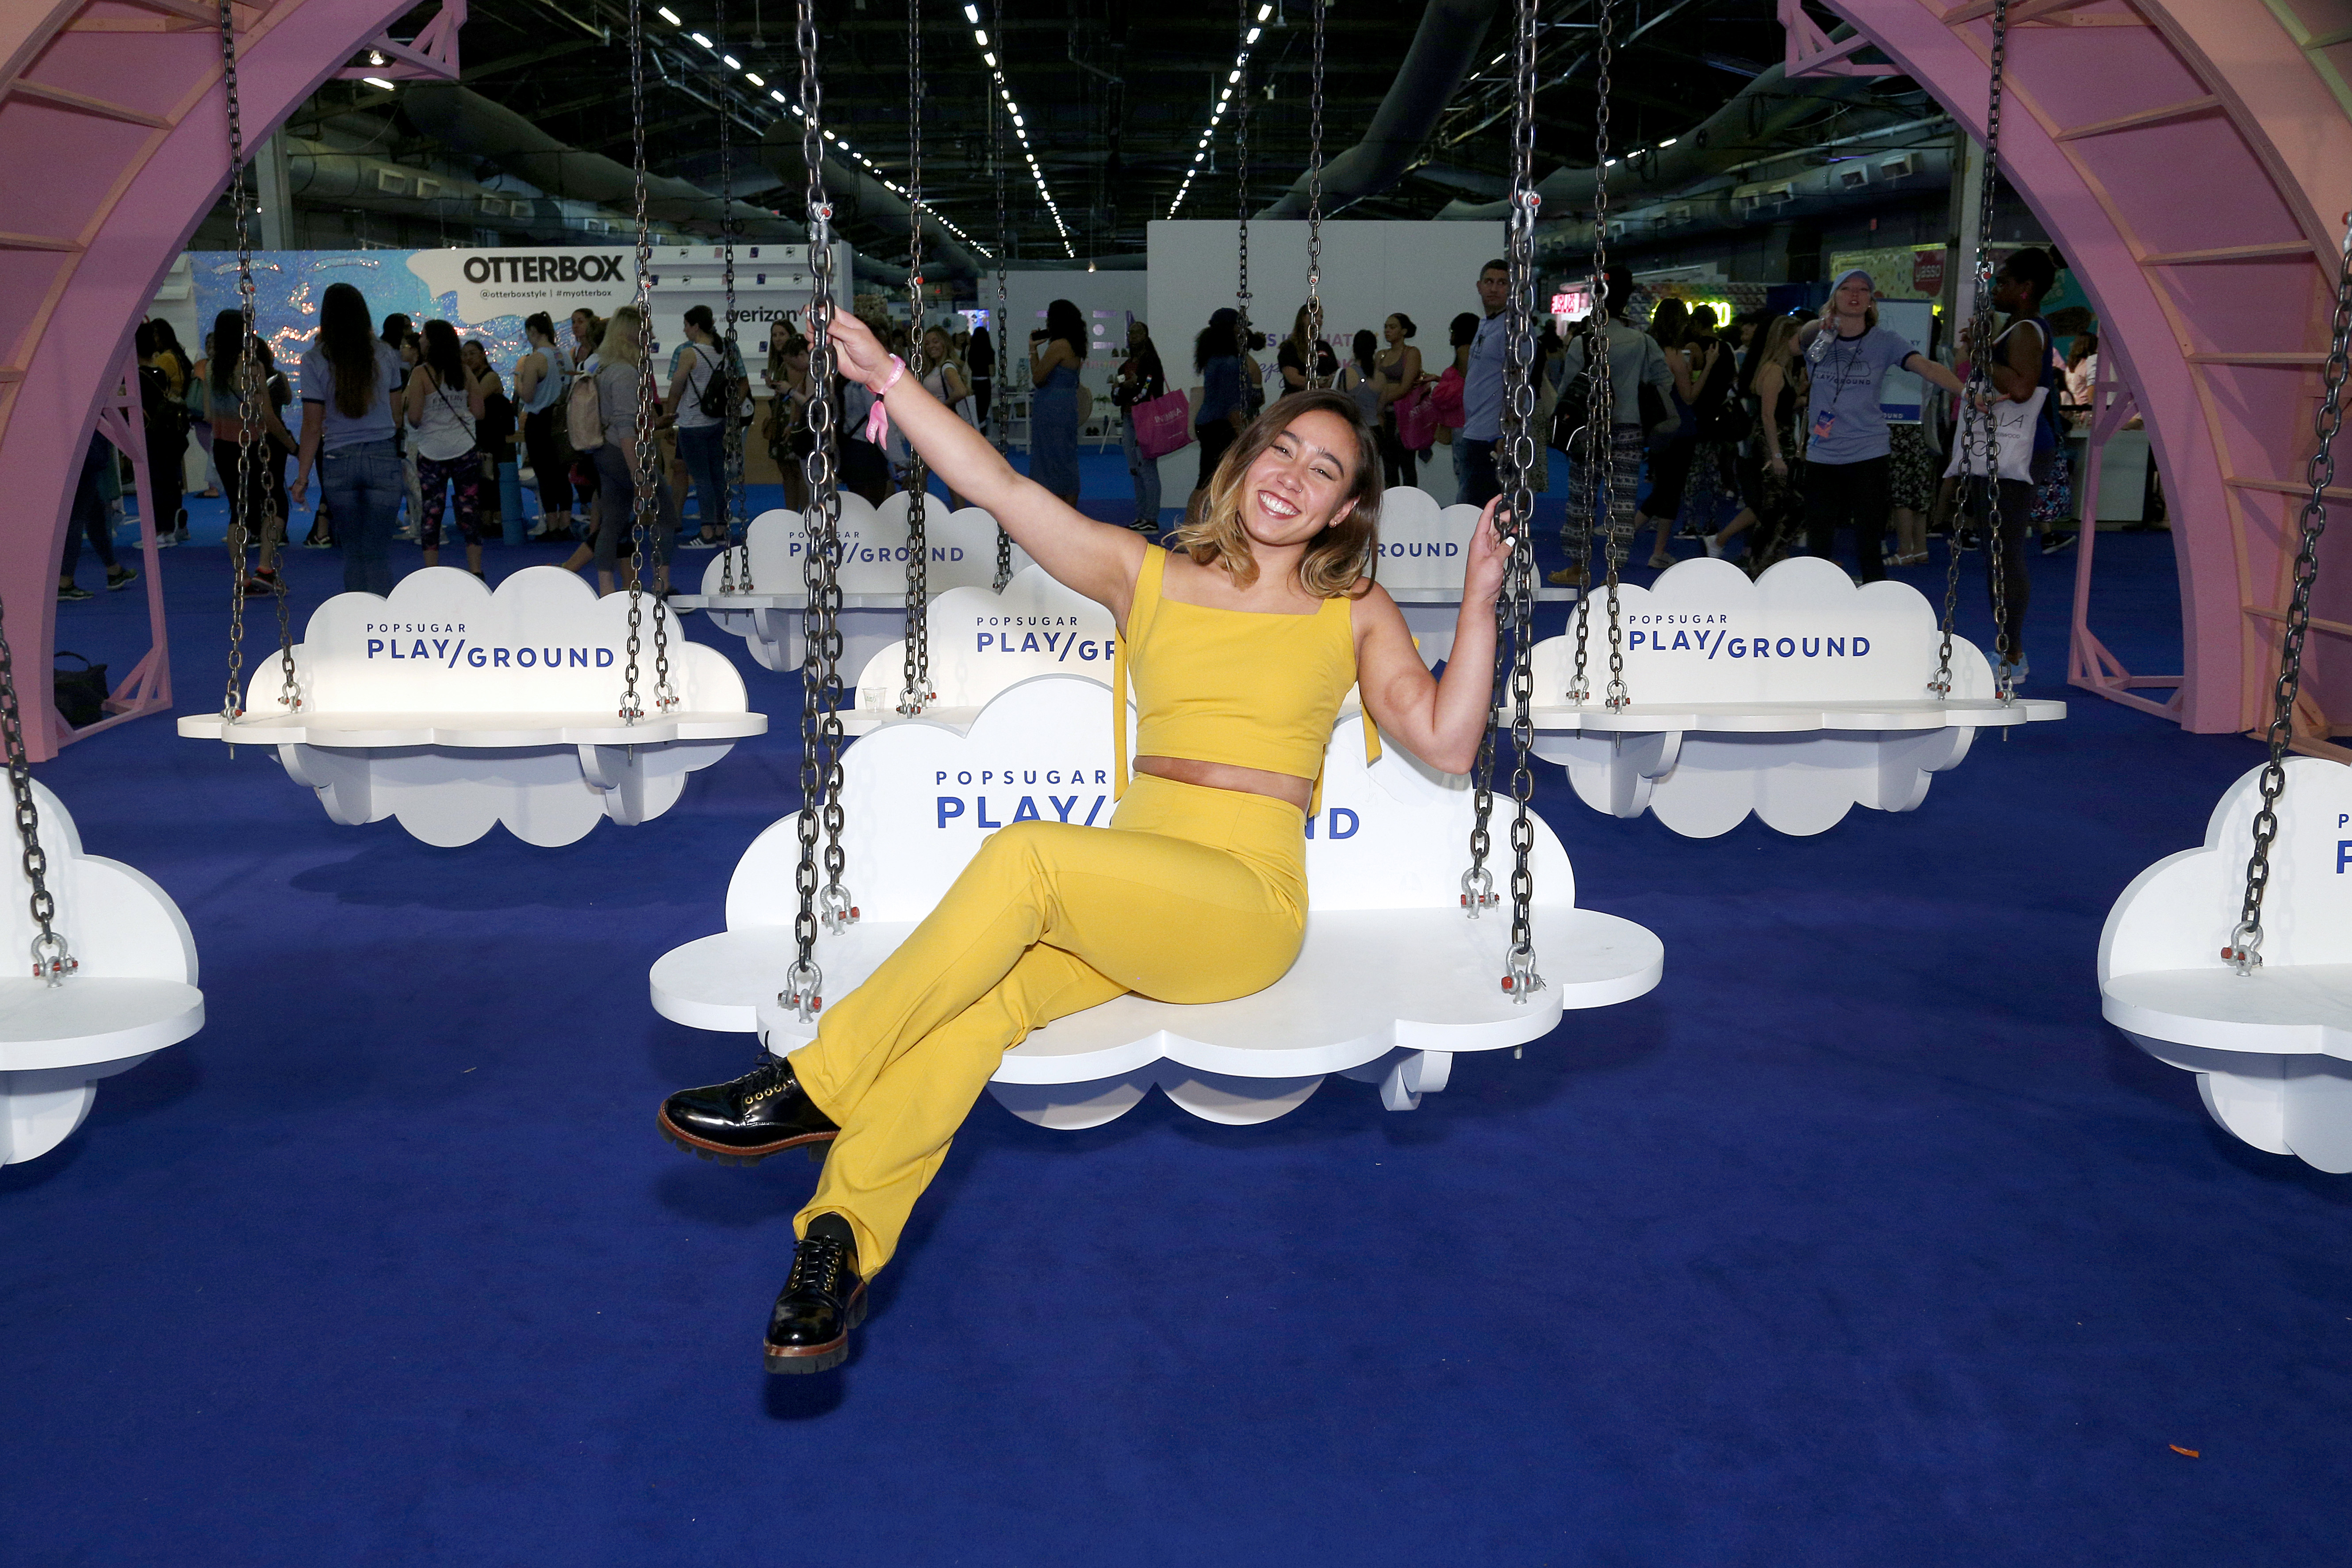 NEW YORK, NEW YORK - JUNE 23: Katelyn Ohashi  during POPSUGAR Play/Ground at Pier 94 on June 23, 2019 in New York City. (Photo by Lars Niki/Getty Images for POPSUGAR and Reed Exhibitions )